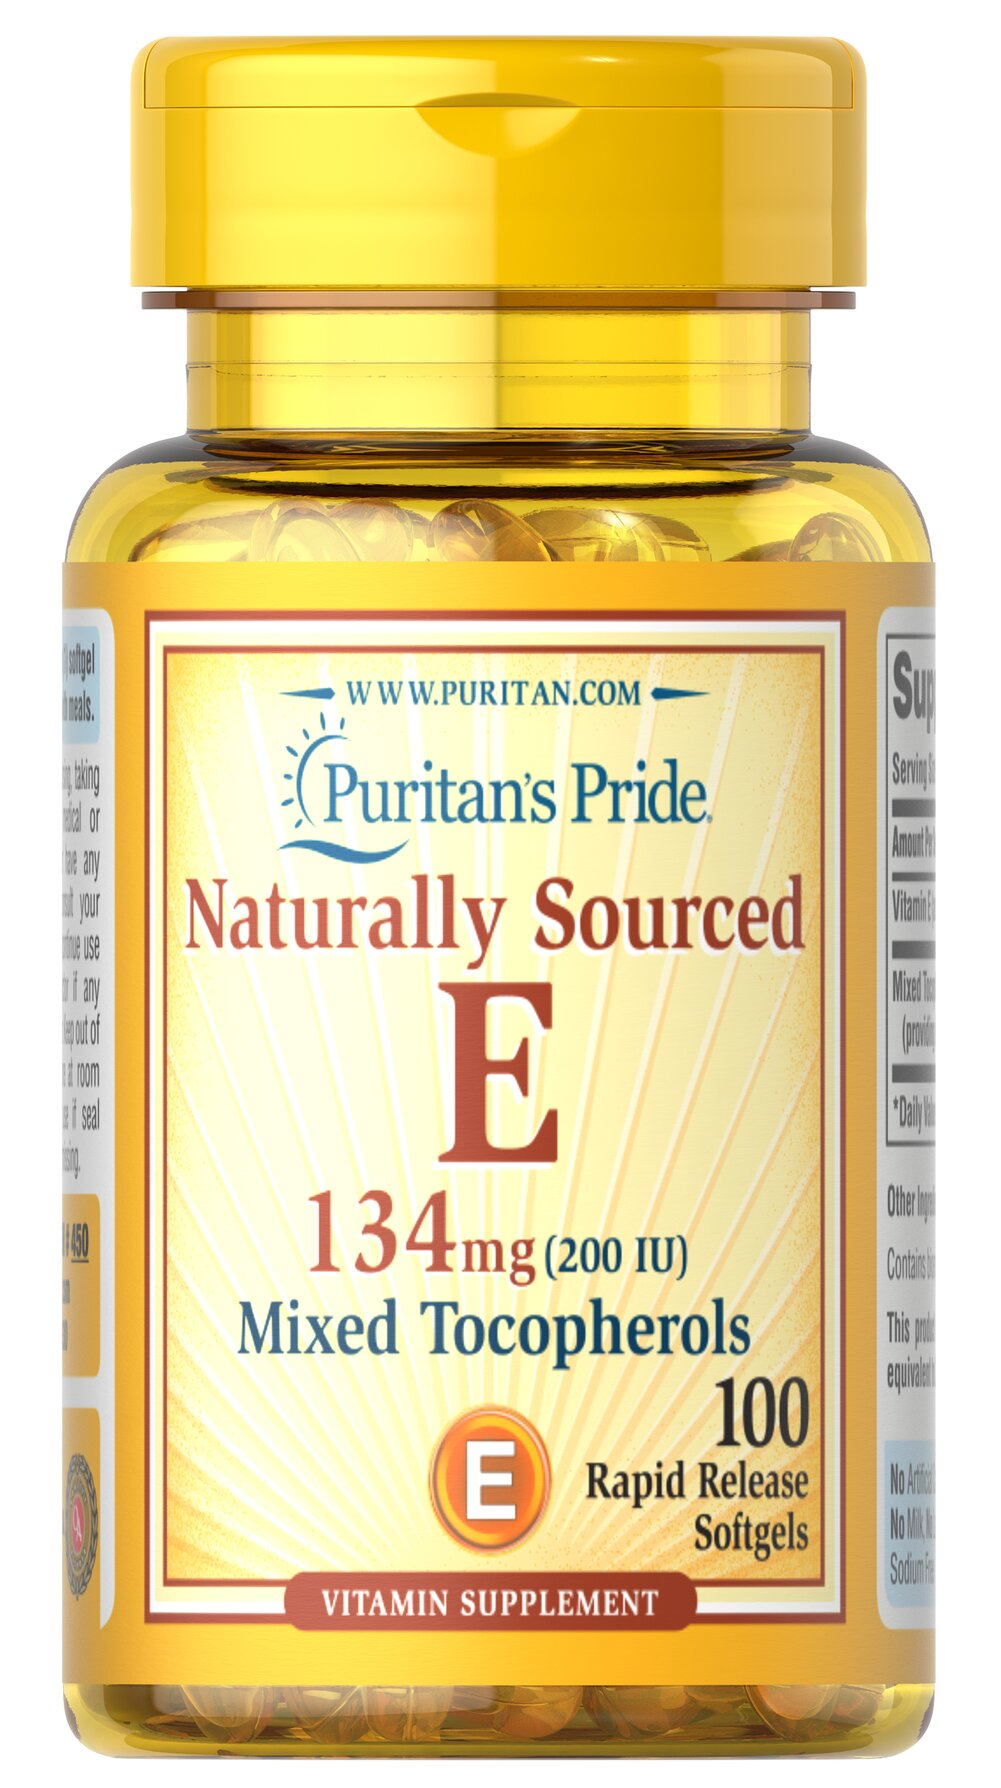 Vitamin E-200 iu Mixed Tocopherols Natural <p><strong>Vitamin E</strong> promotes immune function and helps support cardiovascular health.** <strong>Vitamin E </strong>is also a powerful <strong>antioxidant</strong> that helps fight cell-damaging free radicals in the body.** Studies have shown that oxidative stress caused by free radicals may contribute to the premature aging of cells.**</p> 100 Softgels 200 IU $8.99